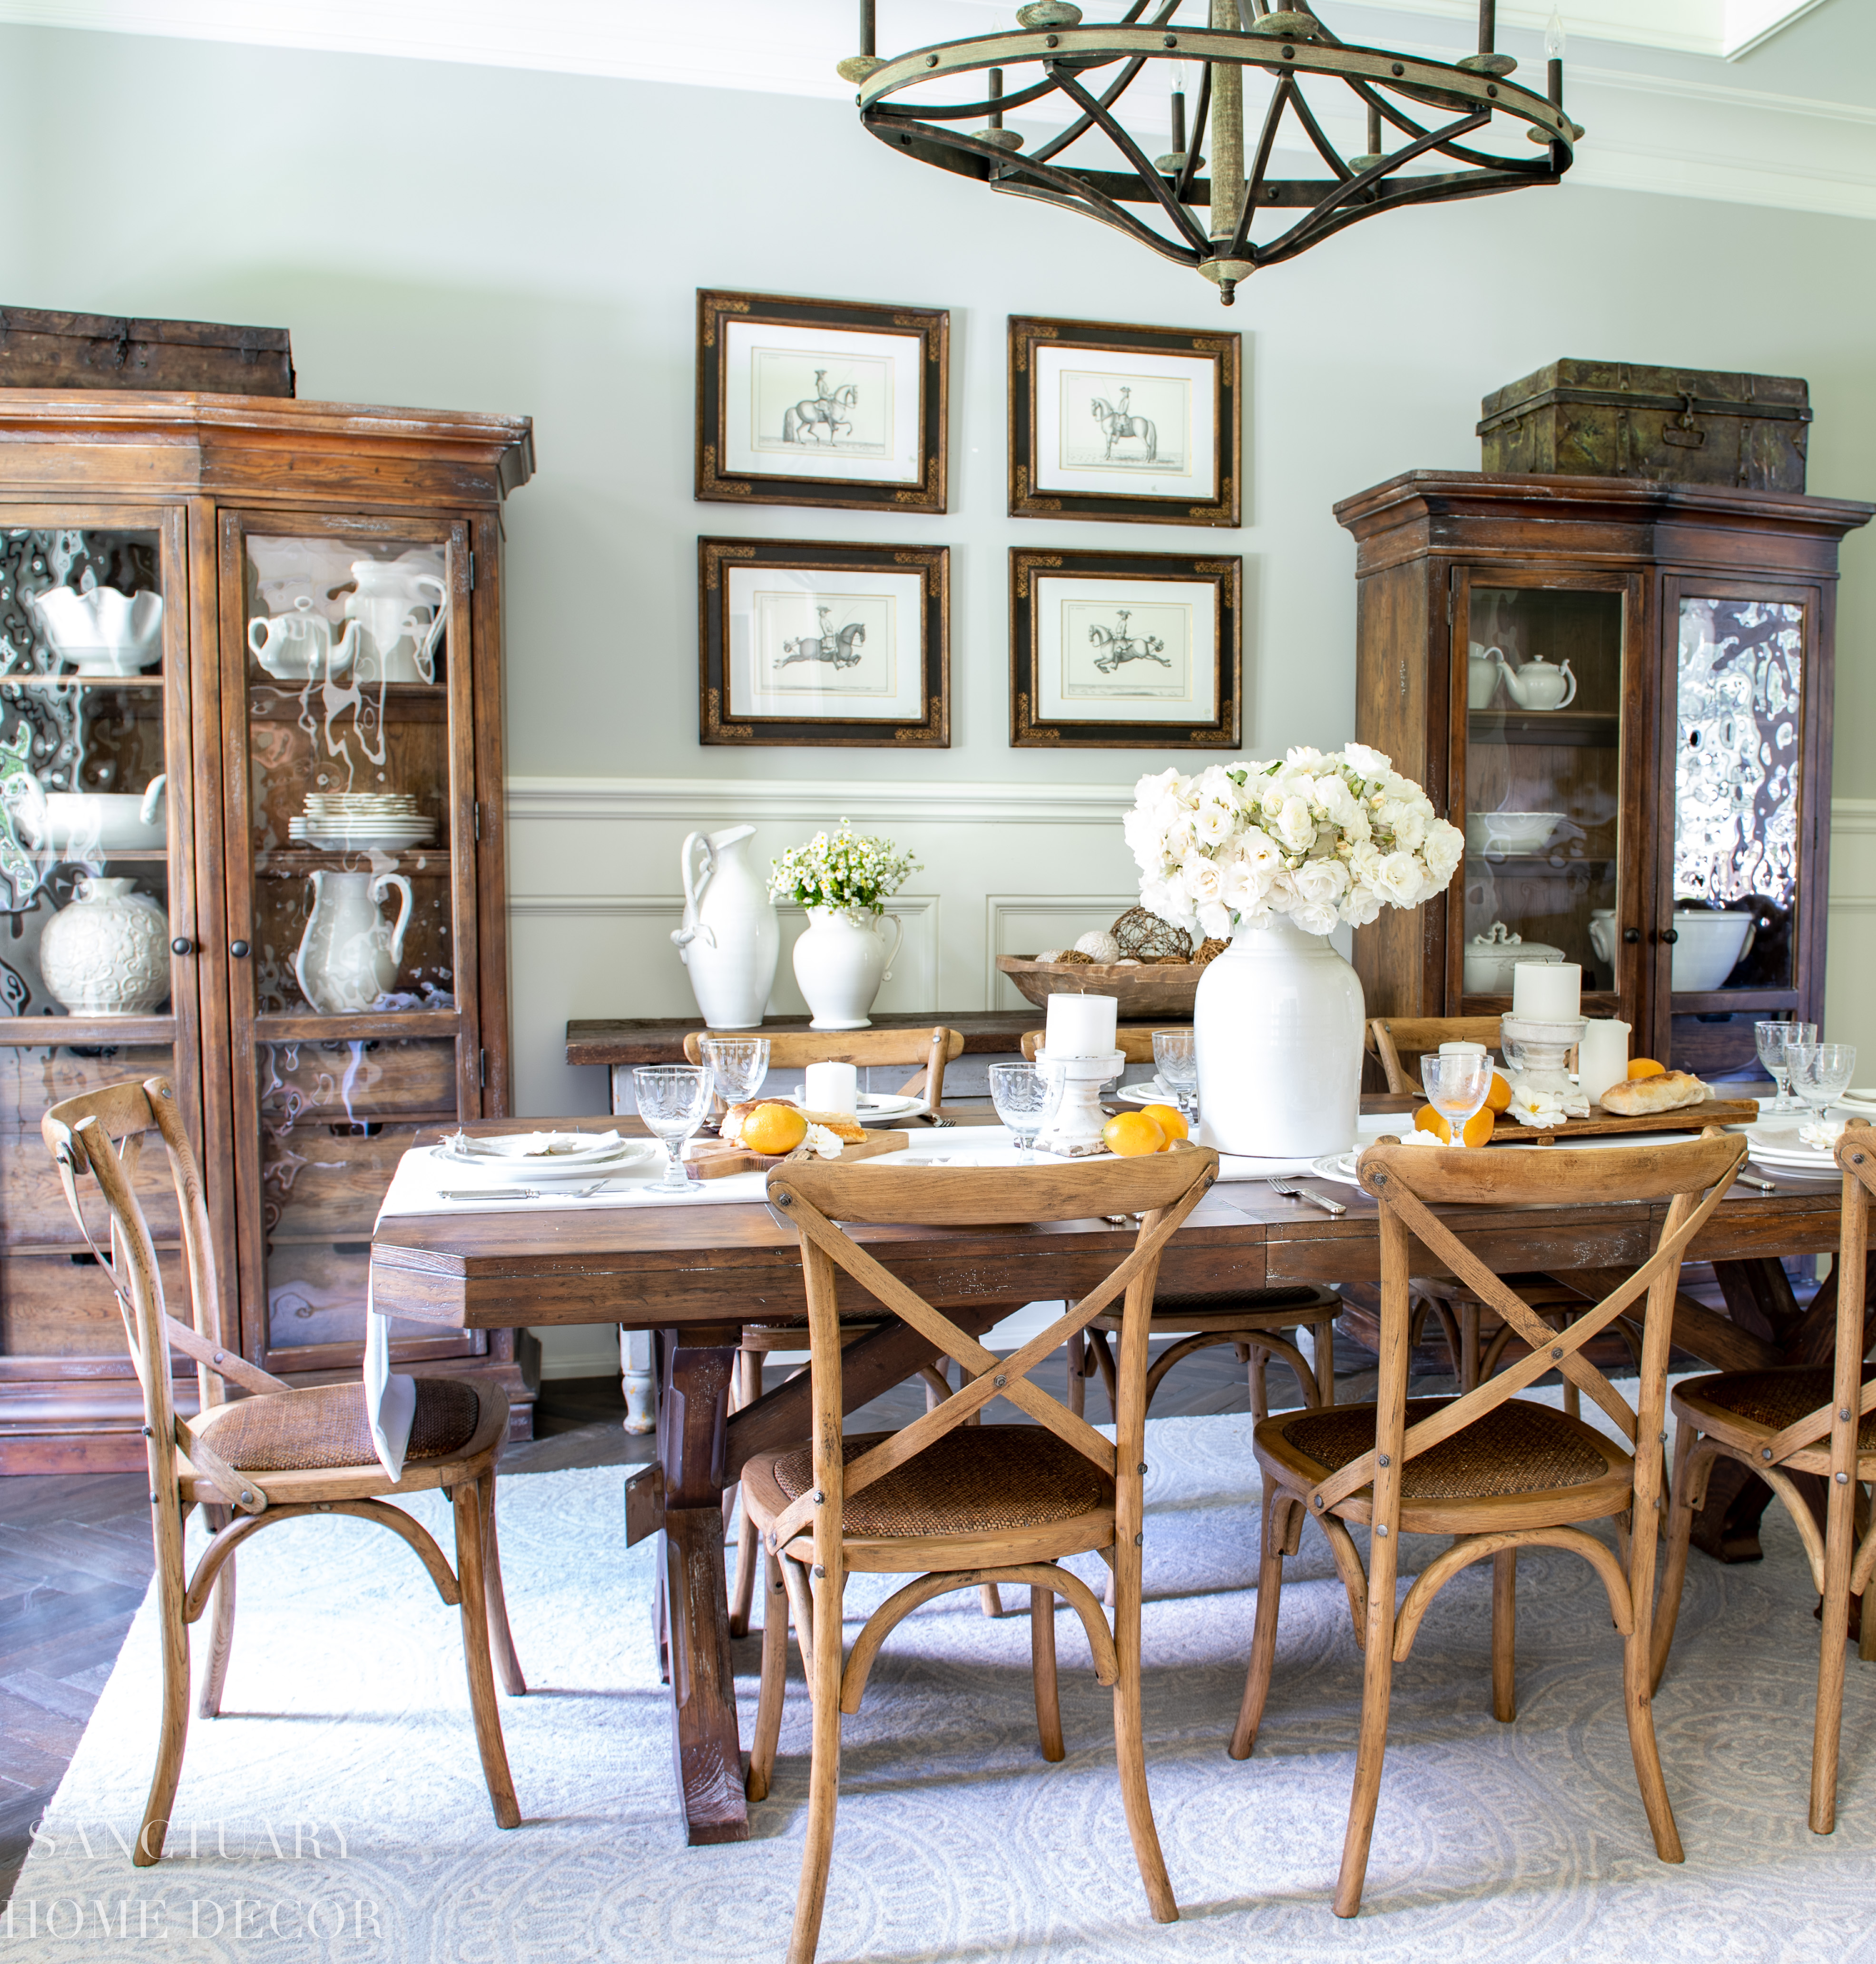 sanctuary home decor dining room